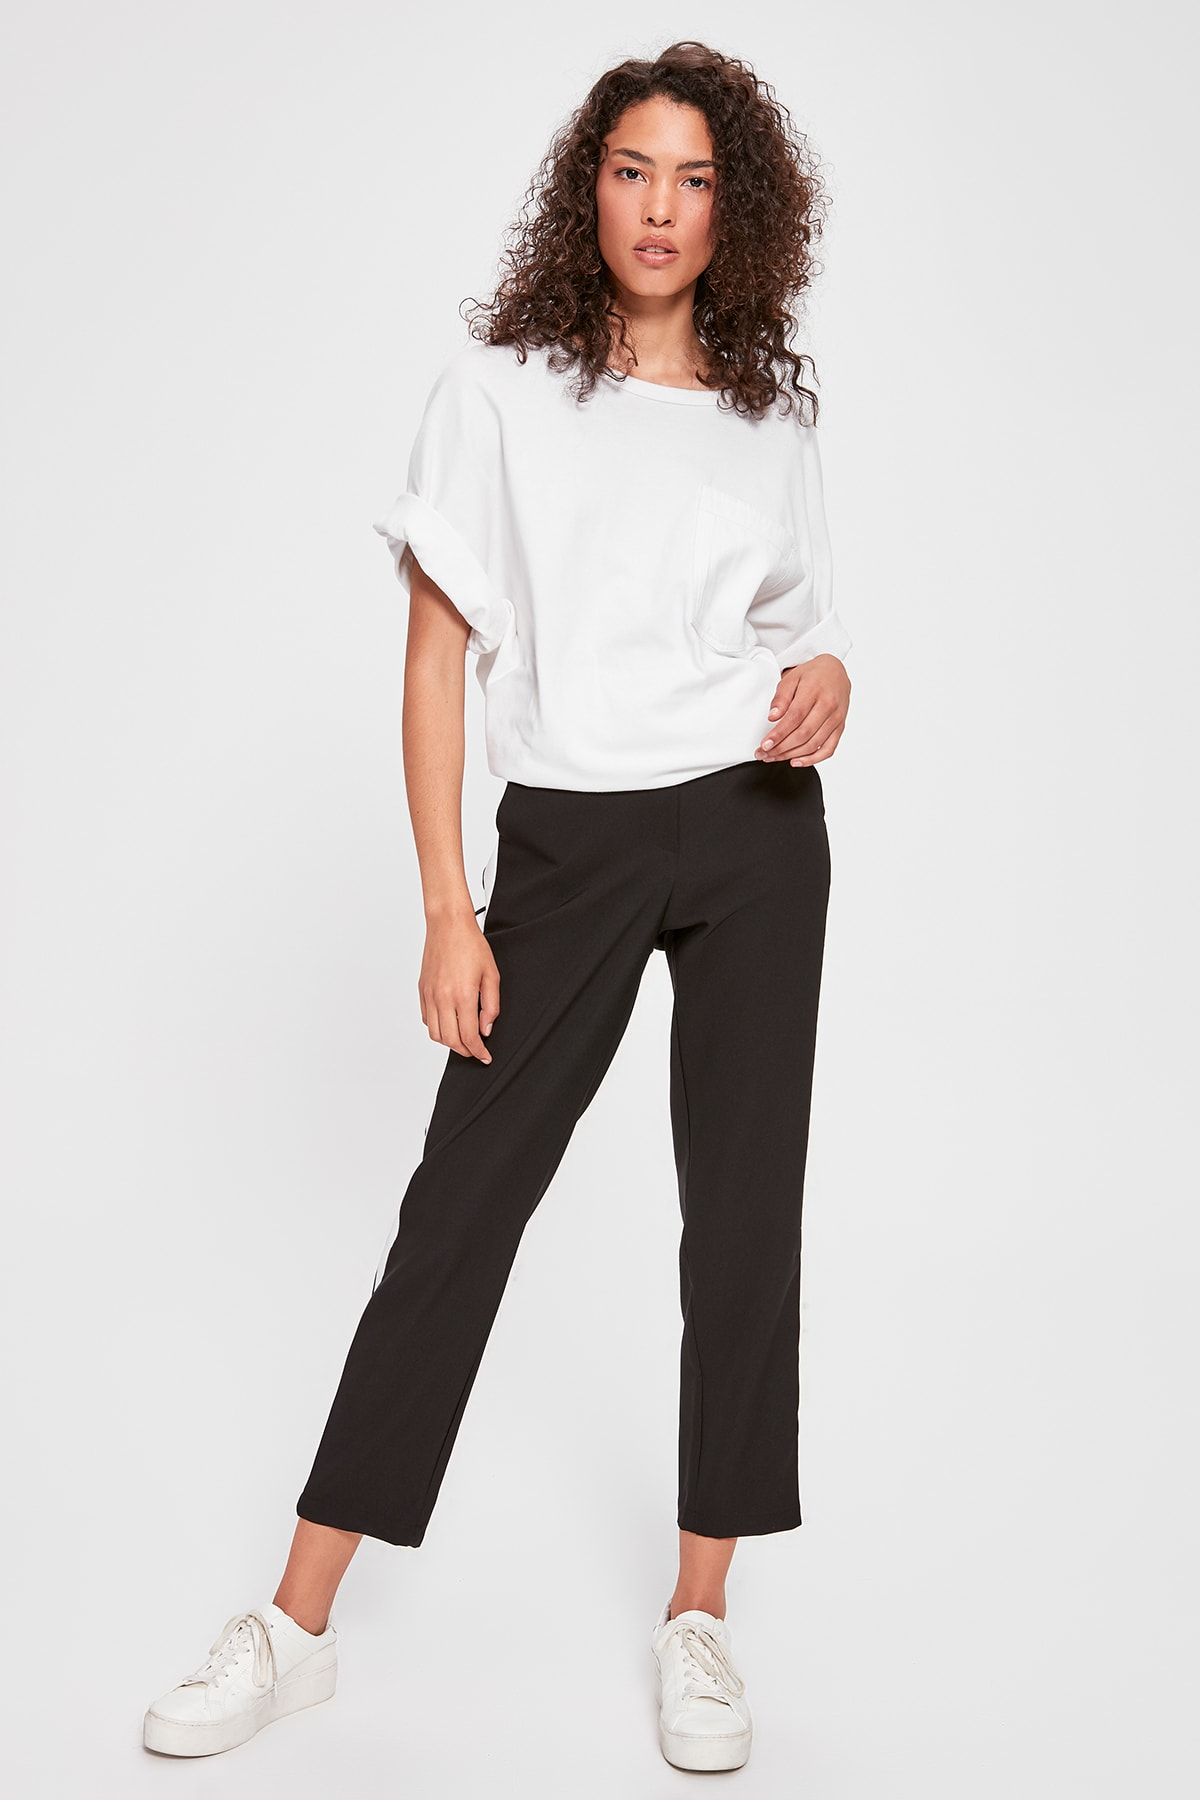 Trendyol Black With Color Block Pants TWOAW20PL0365